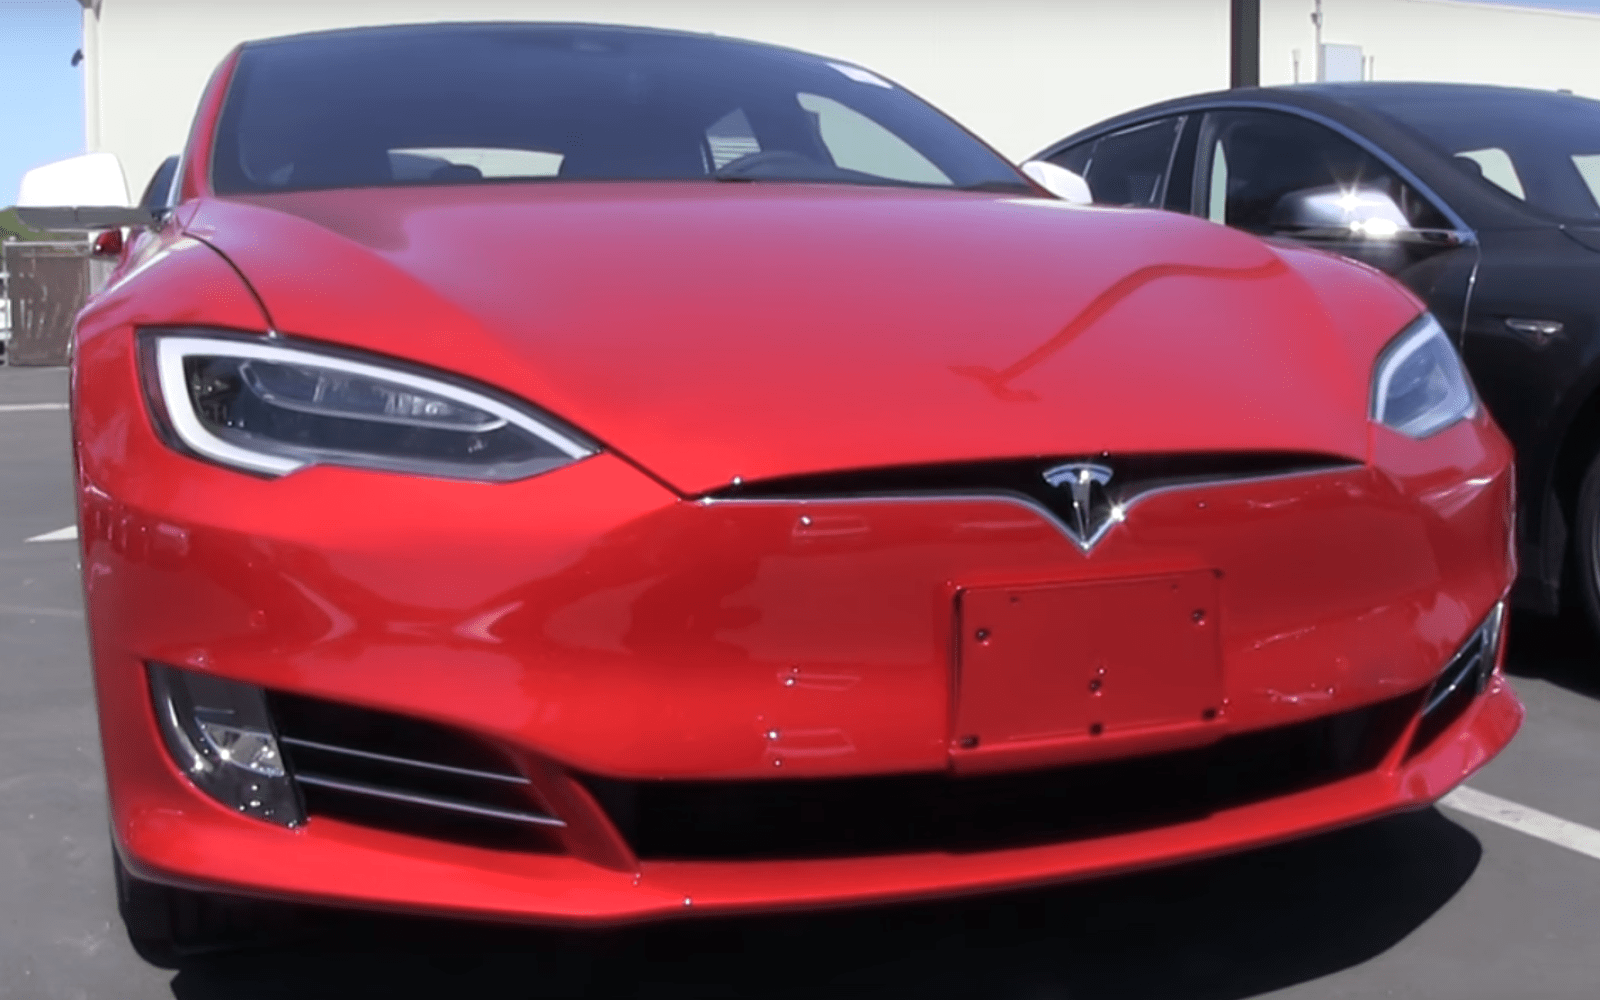 A close look at the updated Tesla Model S with new front